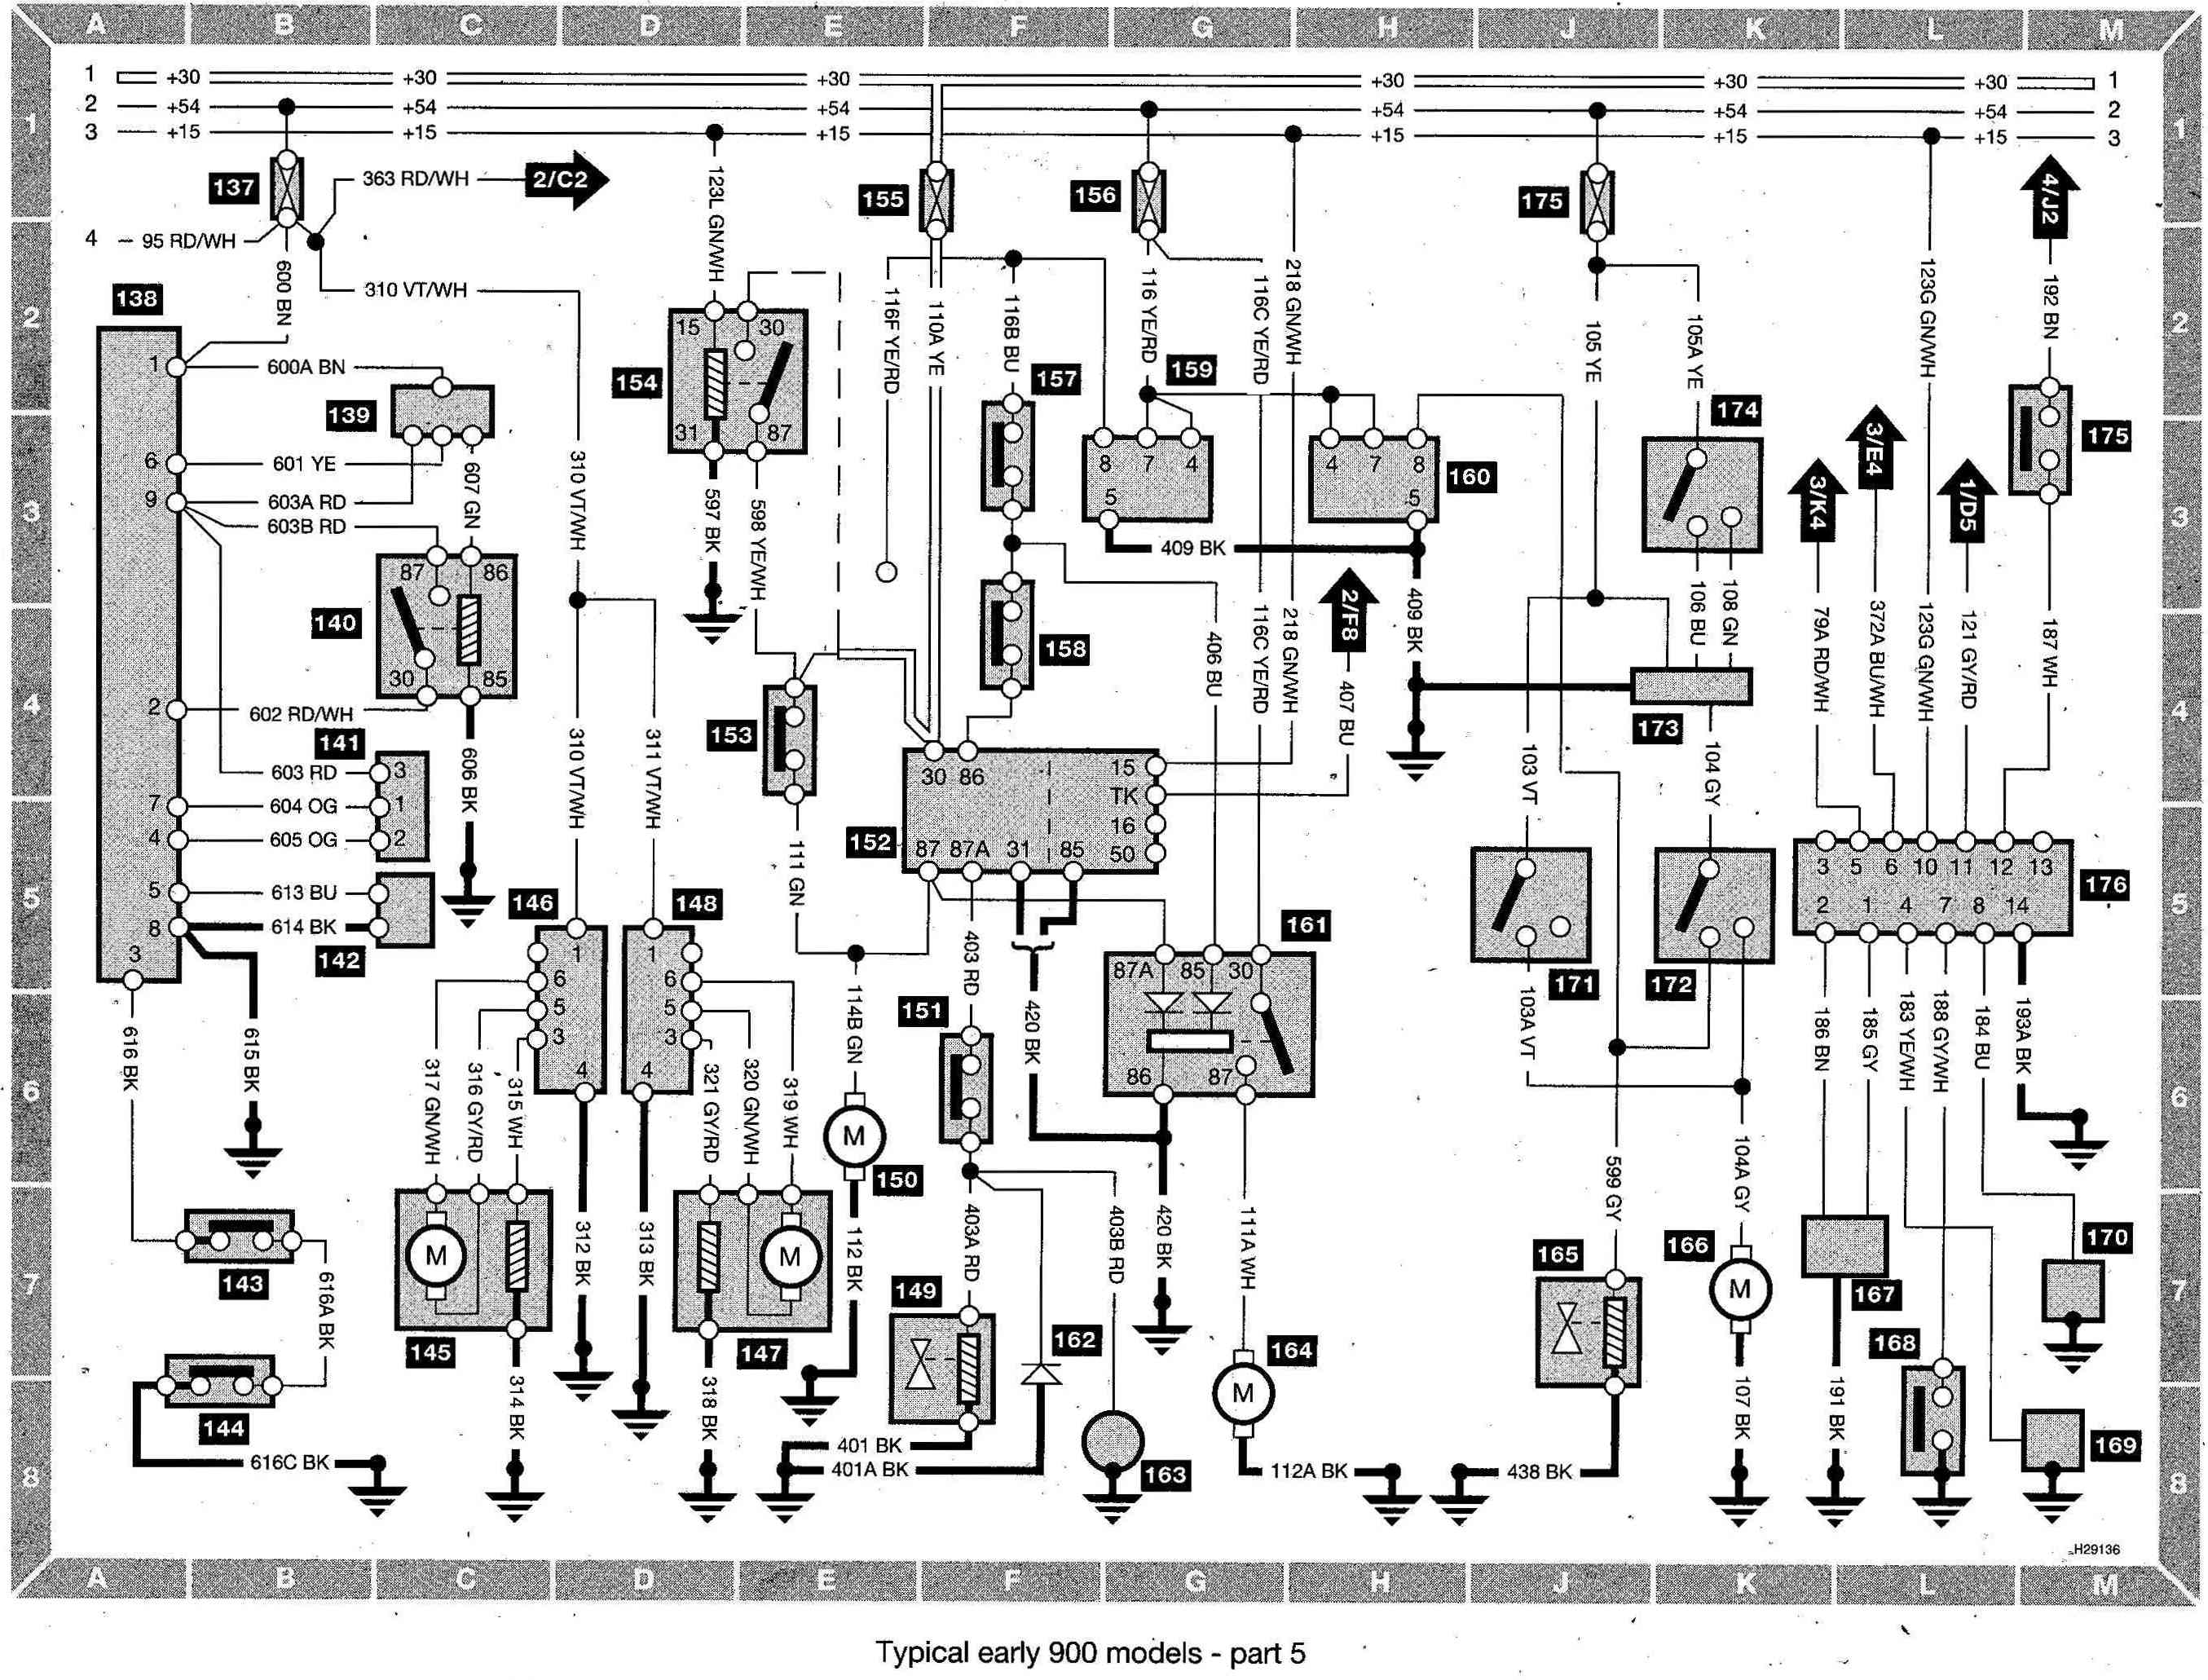 Saab 900 Wiring diagram (early models) part 5 index of saab saab 900 wiring diagram (early models) BU-353 Light Green at n-0.co